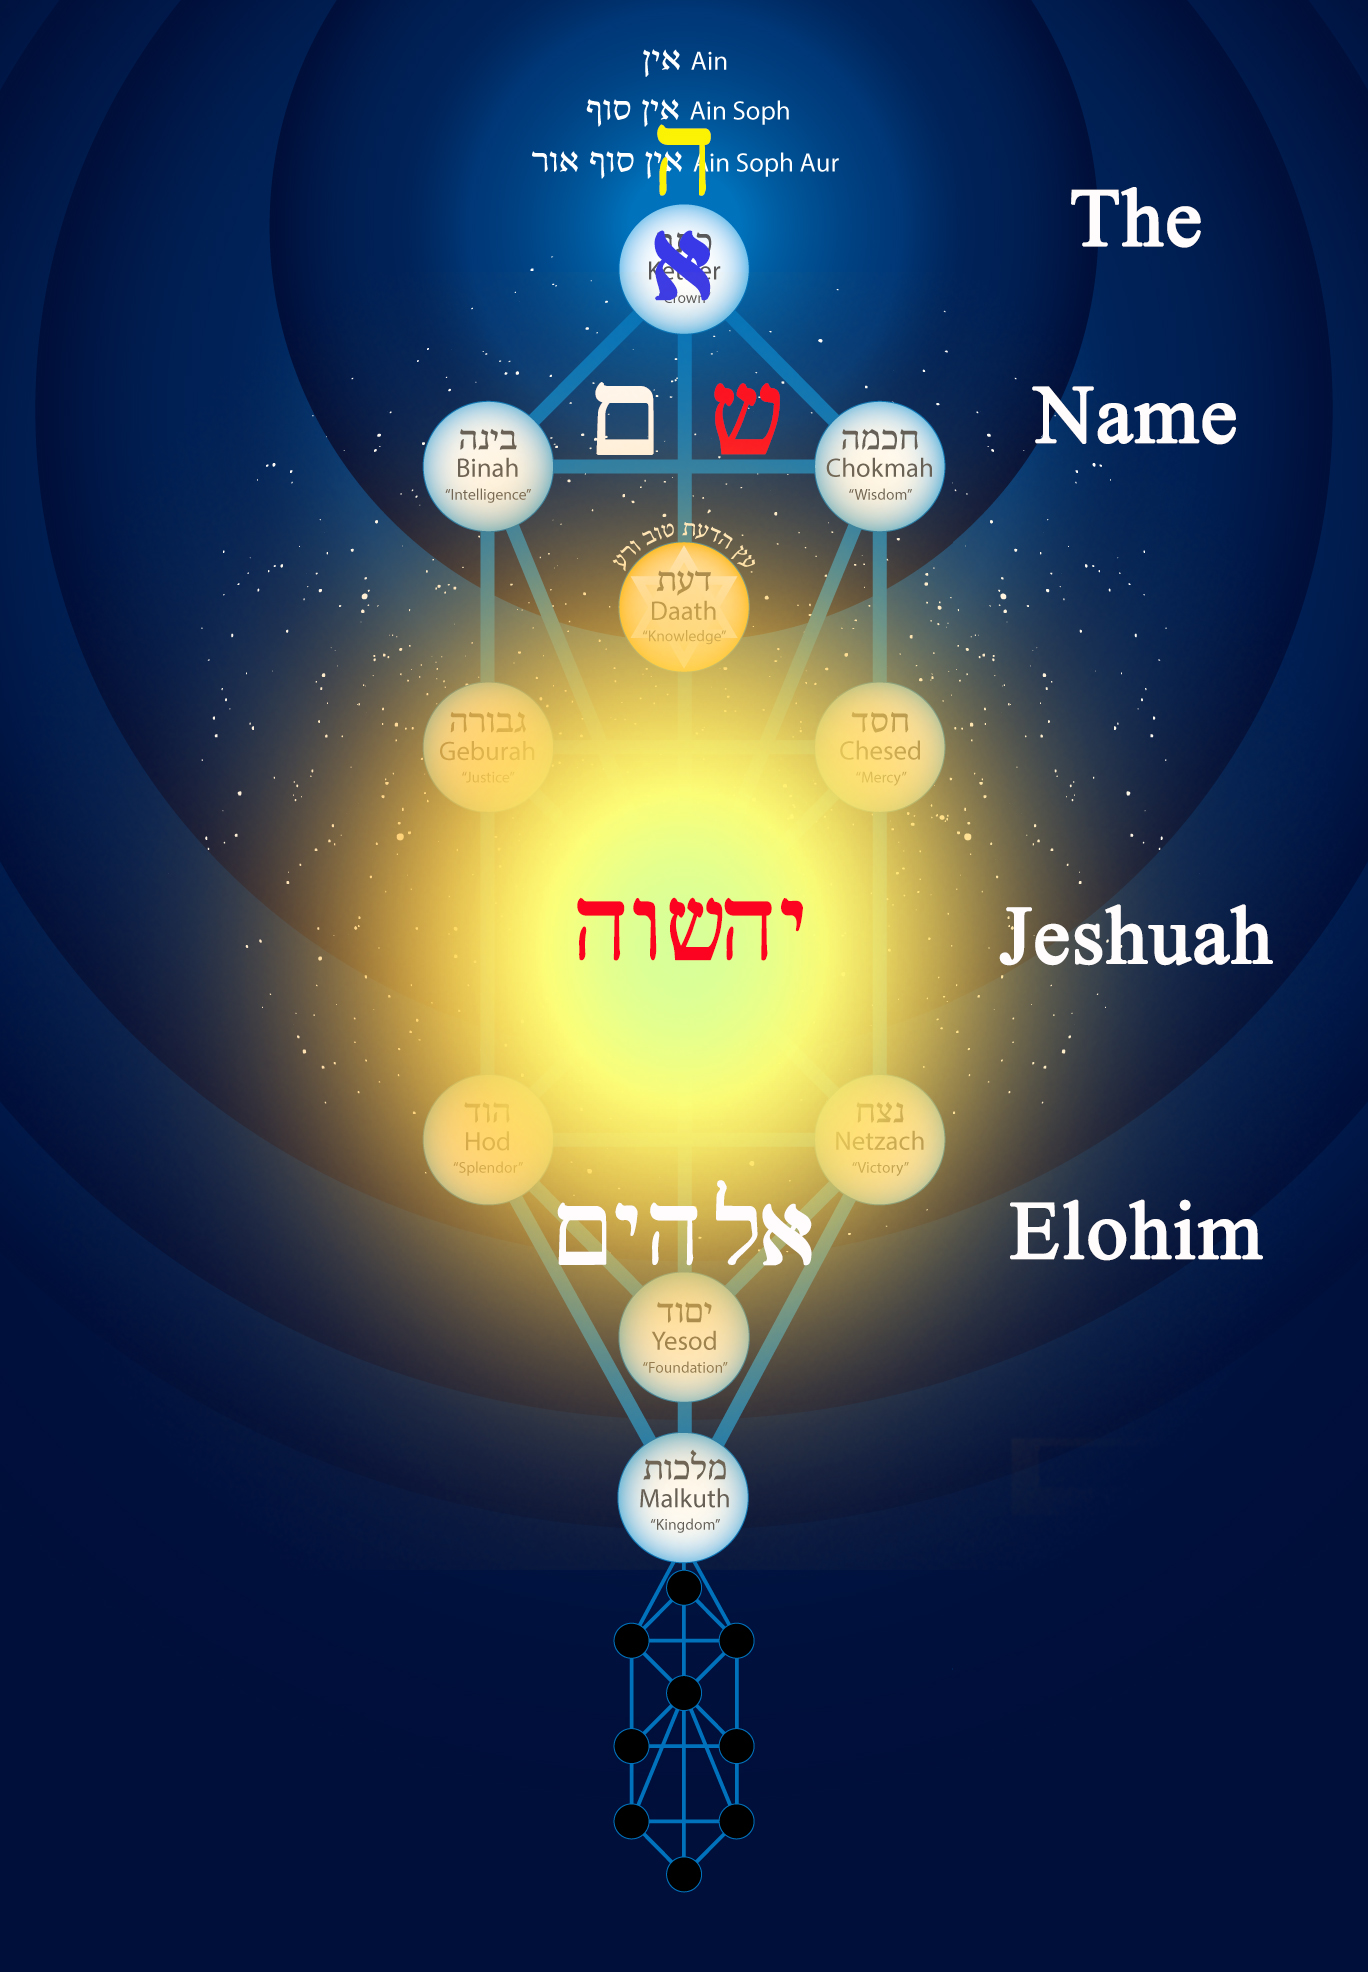 The Name Yeshuah Elohim